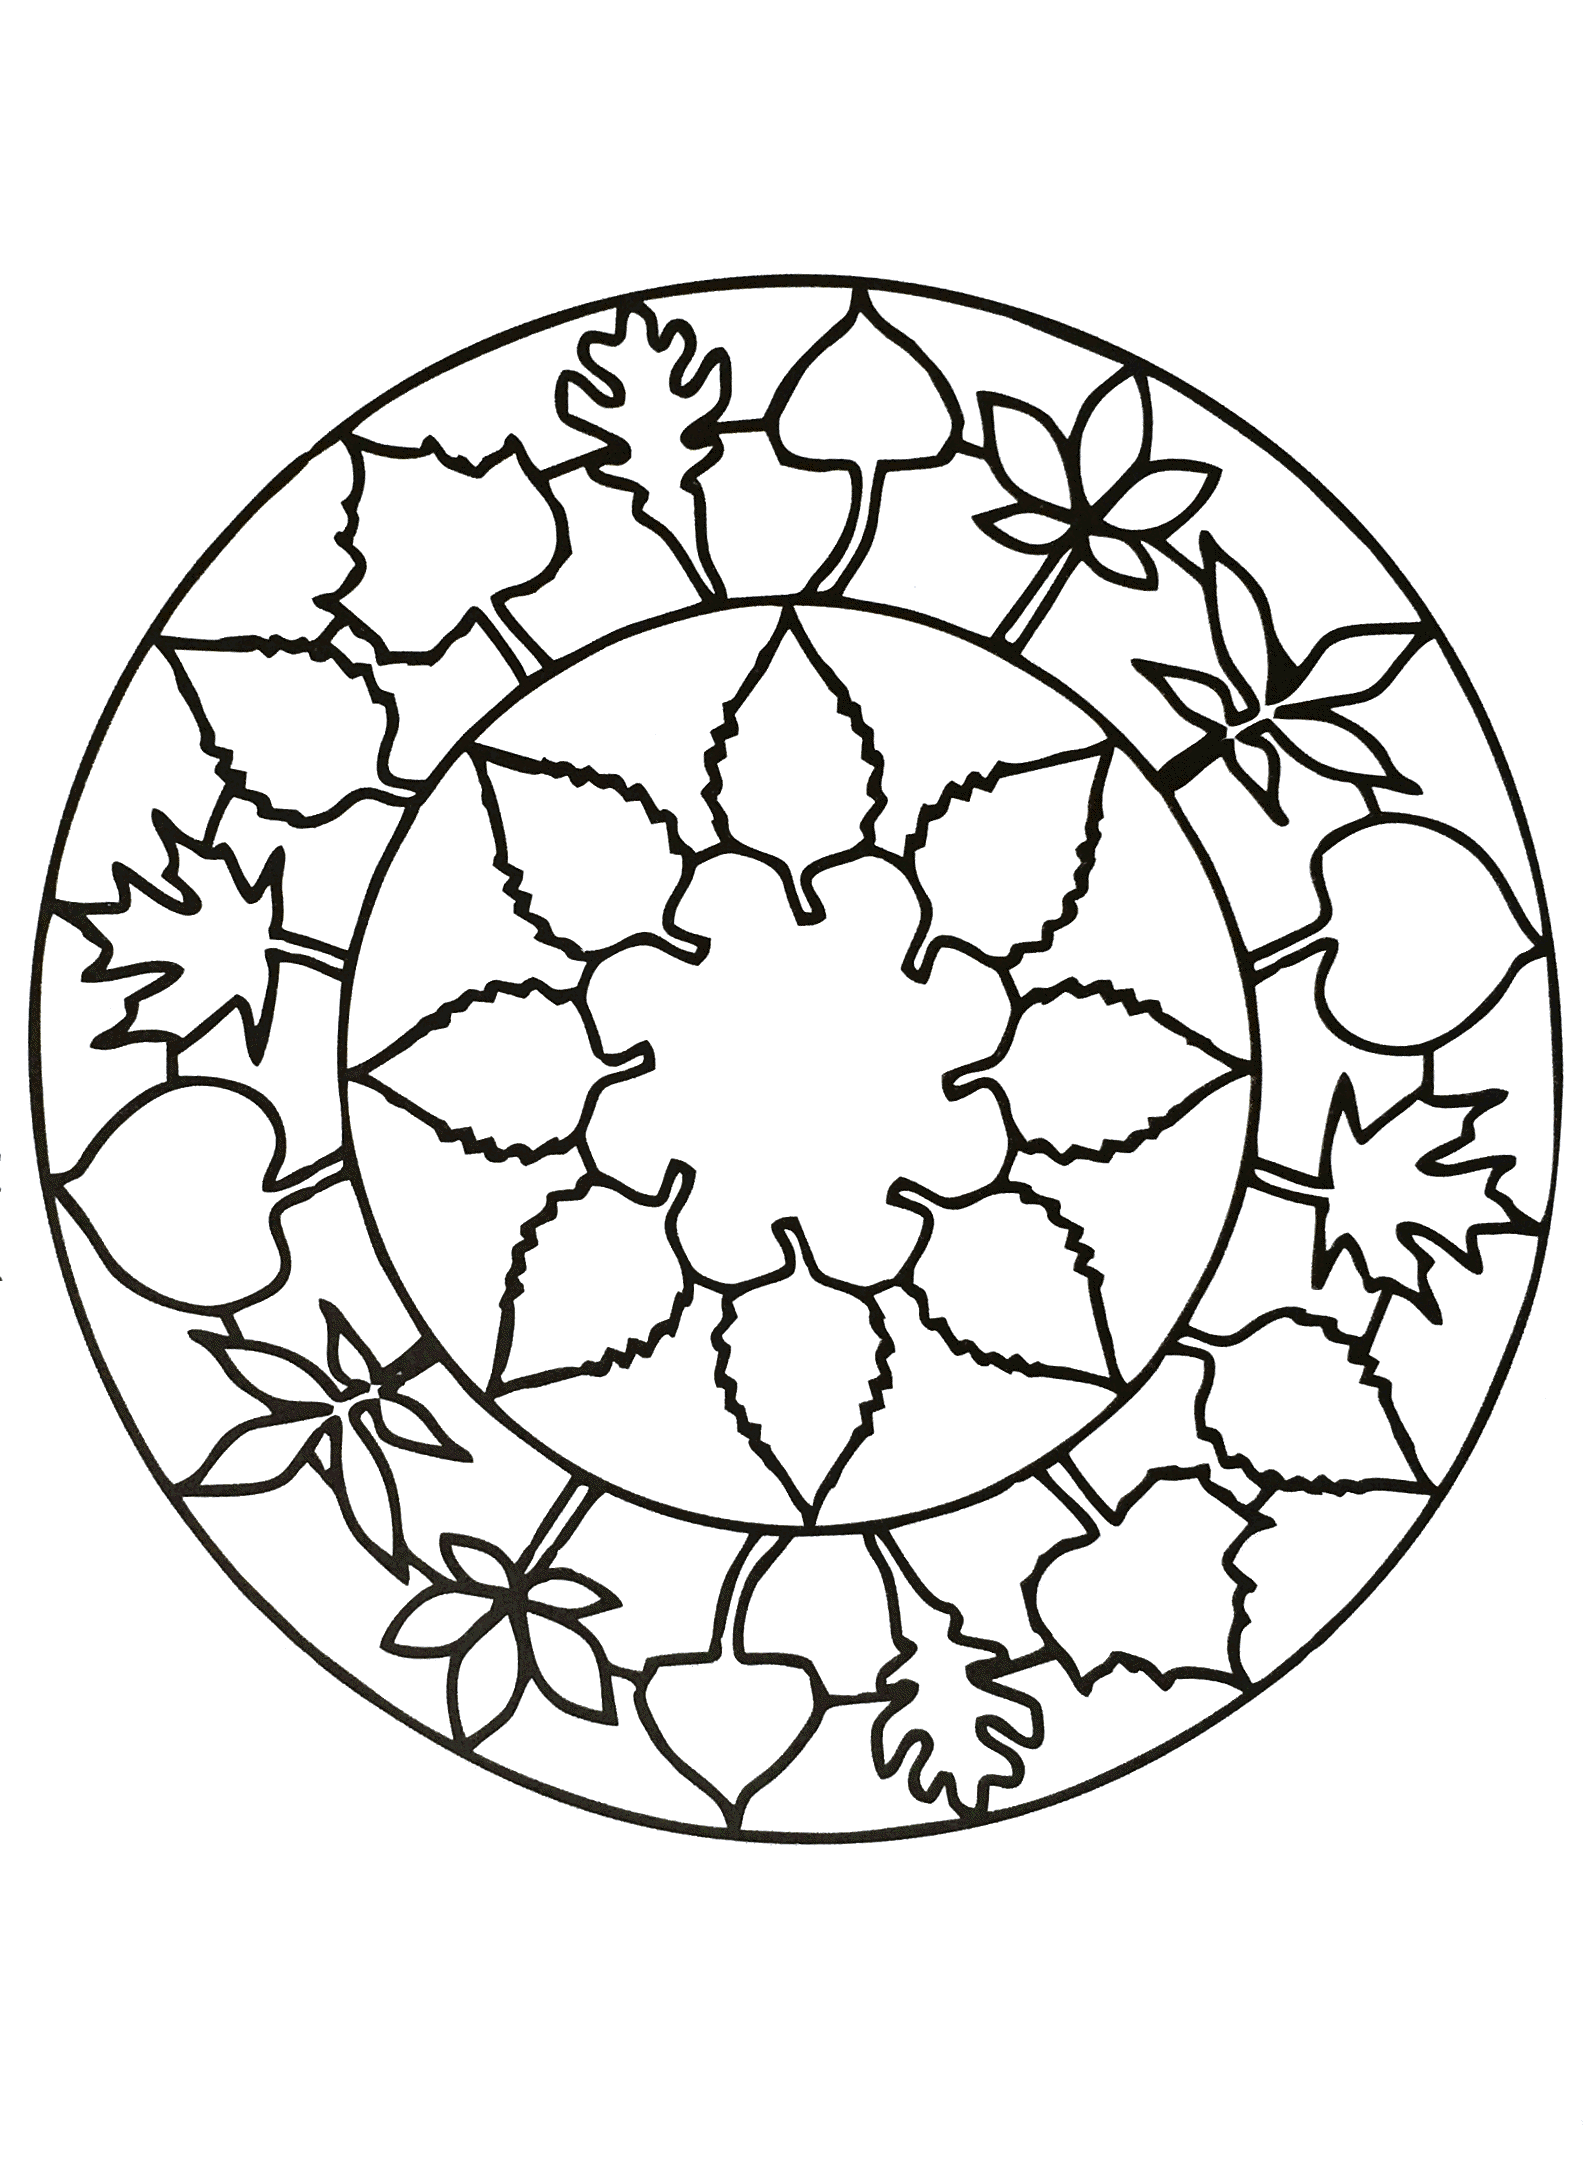 Mandalas Free To Color For Children Mandalas Kids Coloring Pages